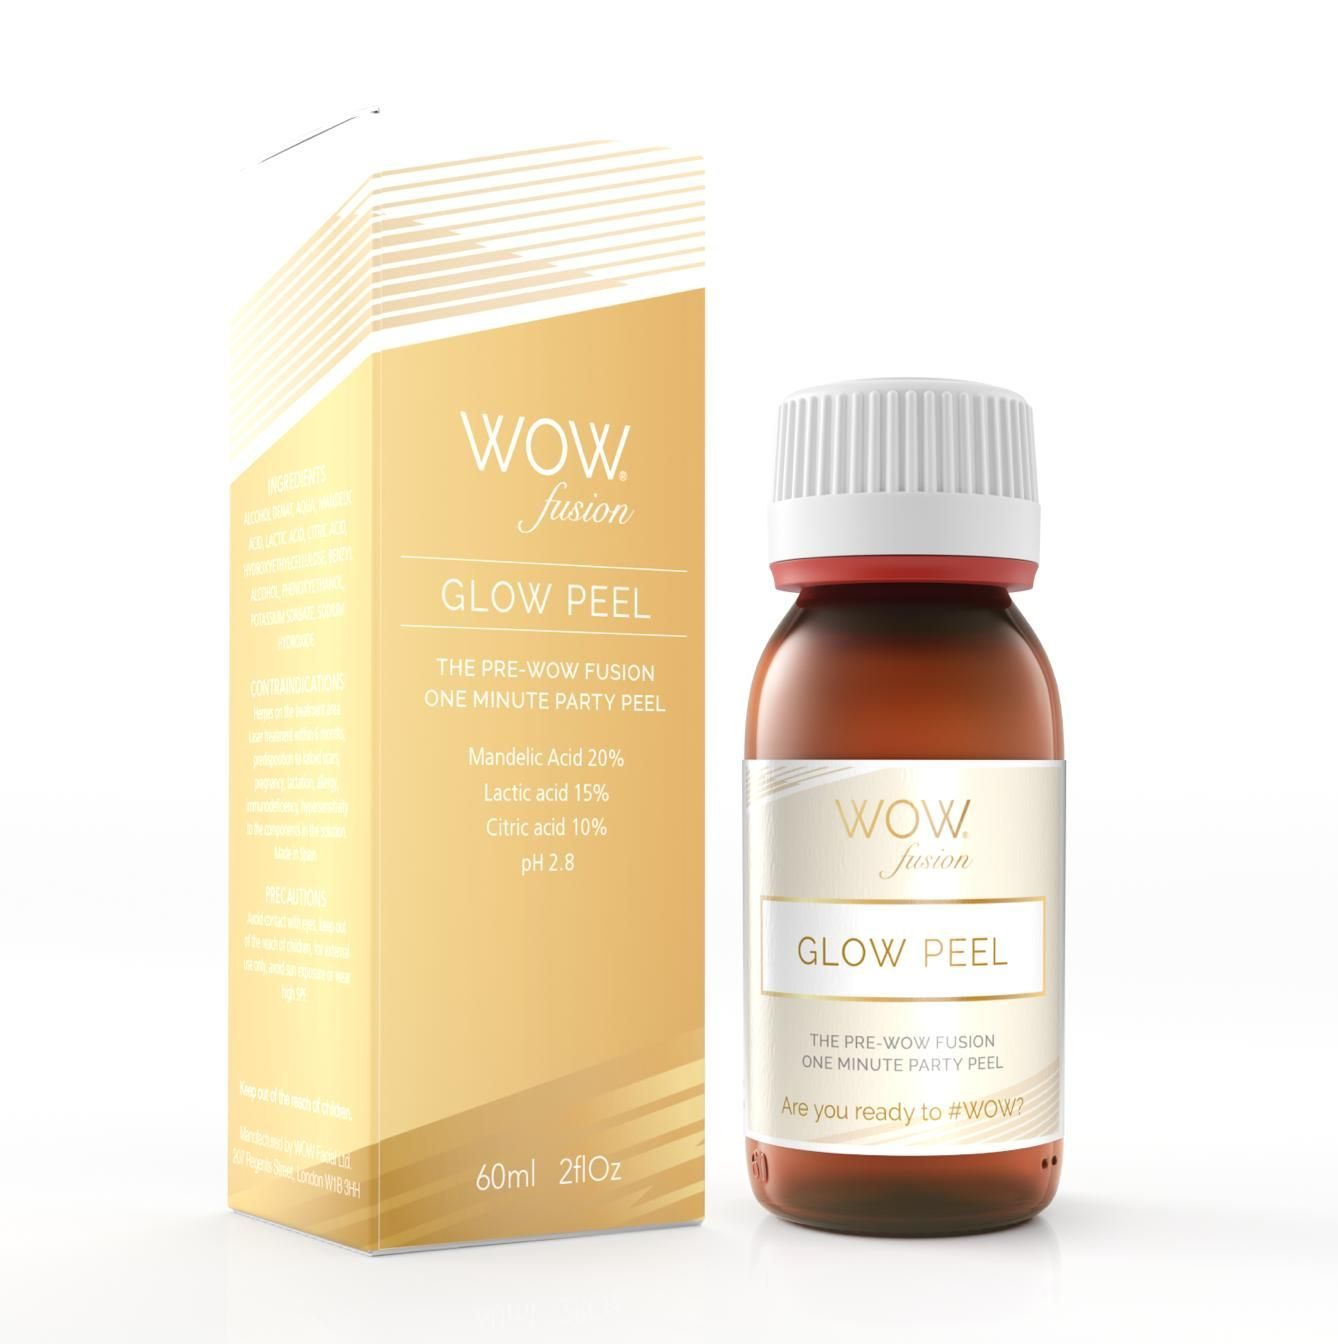 Introducing the new WOW fusion® GLOW peel